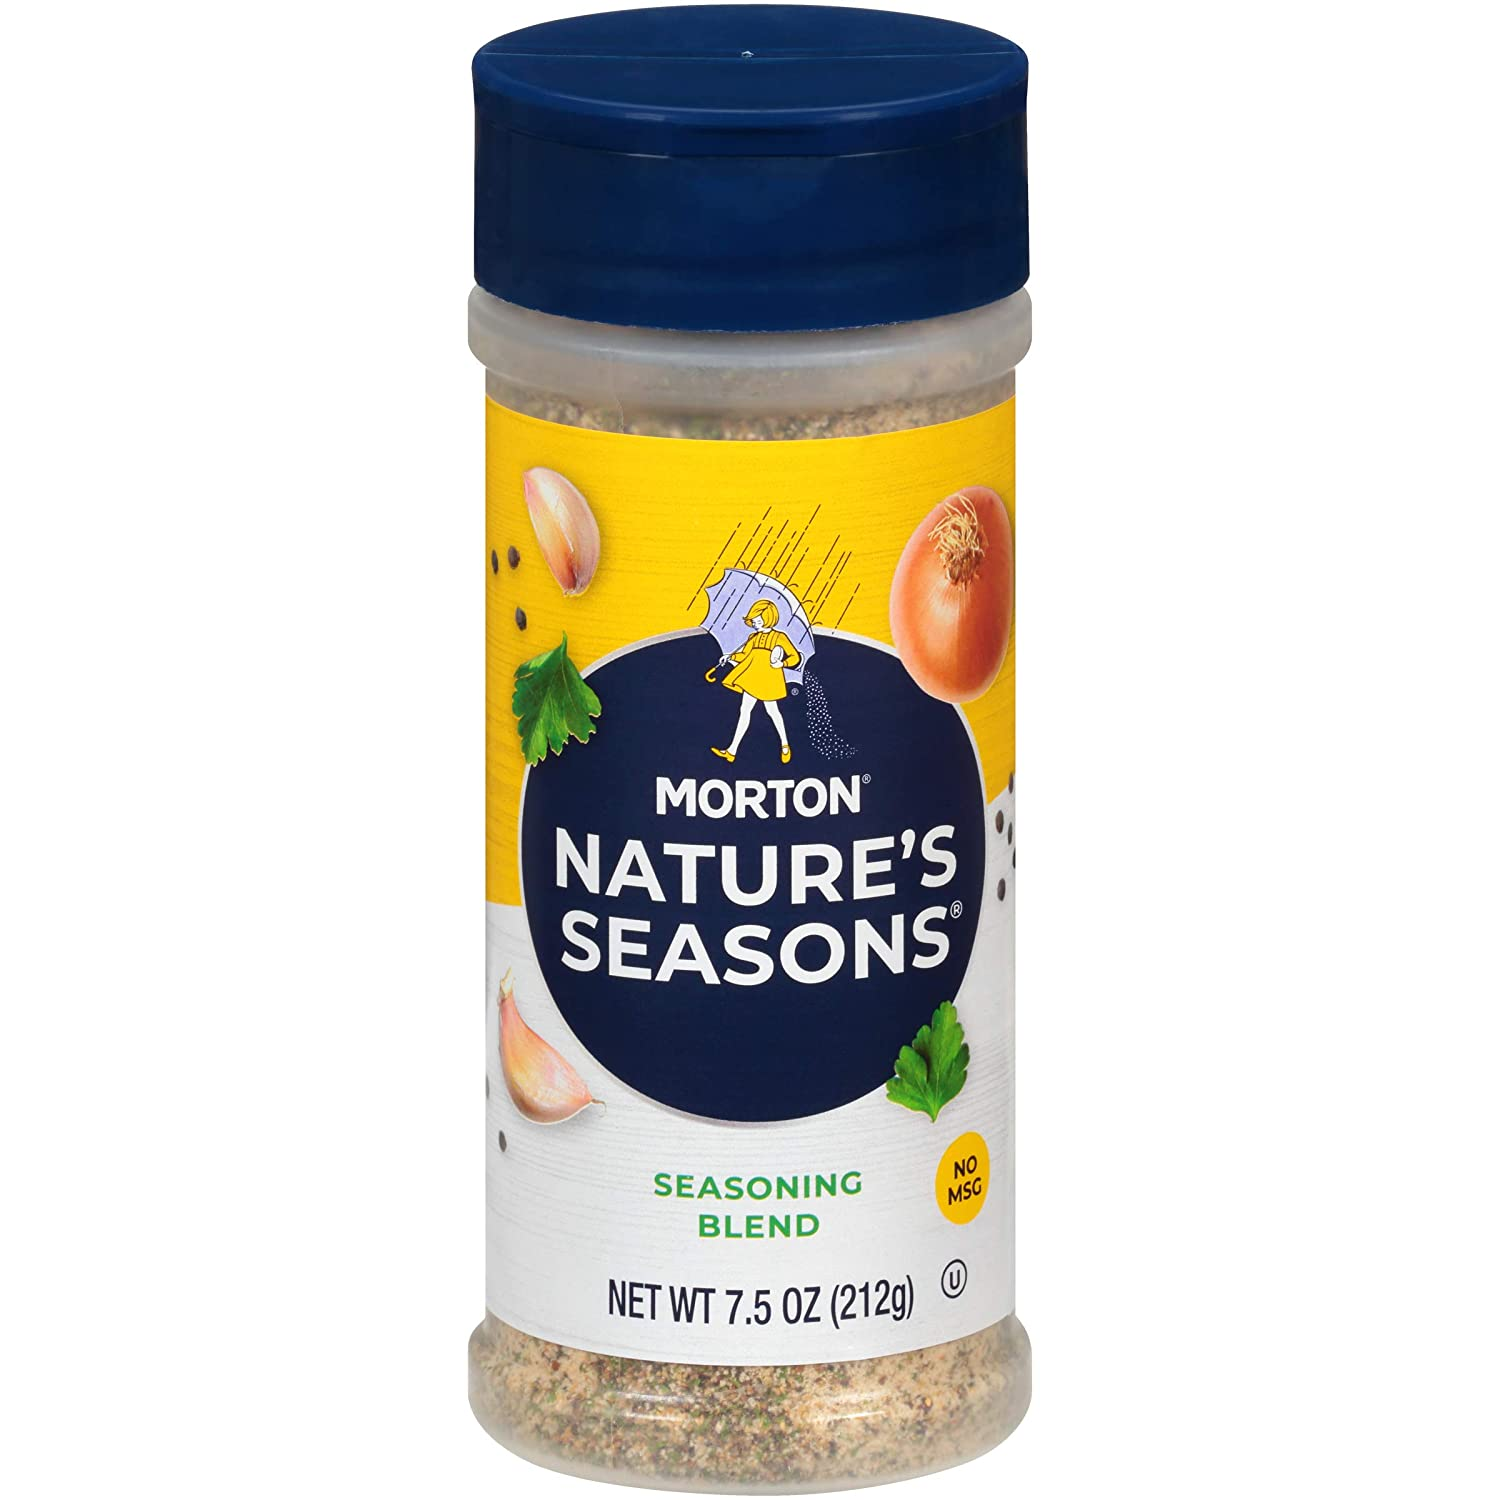 Morton Nature's Seasons Seasoning Blend, 7.5 Ounce Canister (Pack of 12) : Mixed Spices And Seasonings : Grocery & Gourmet Food